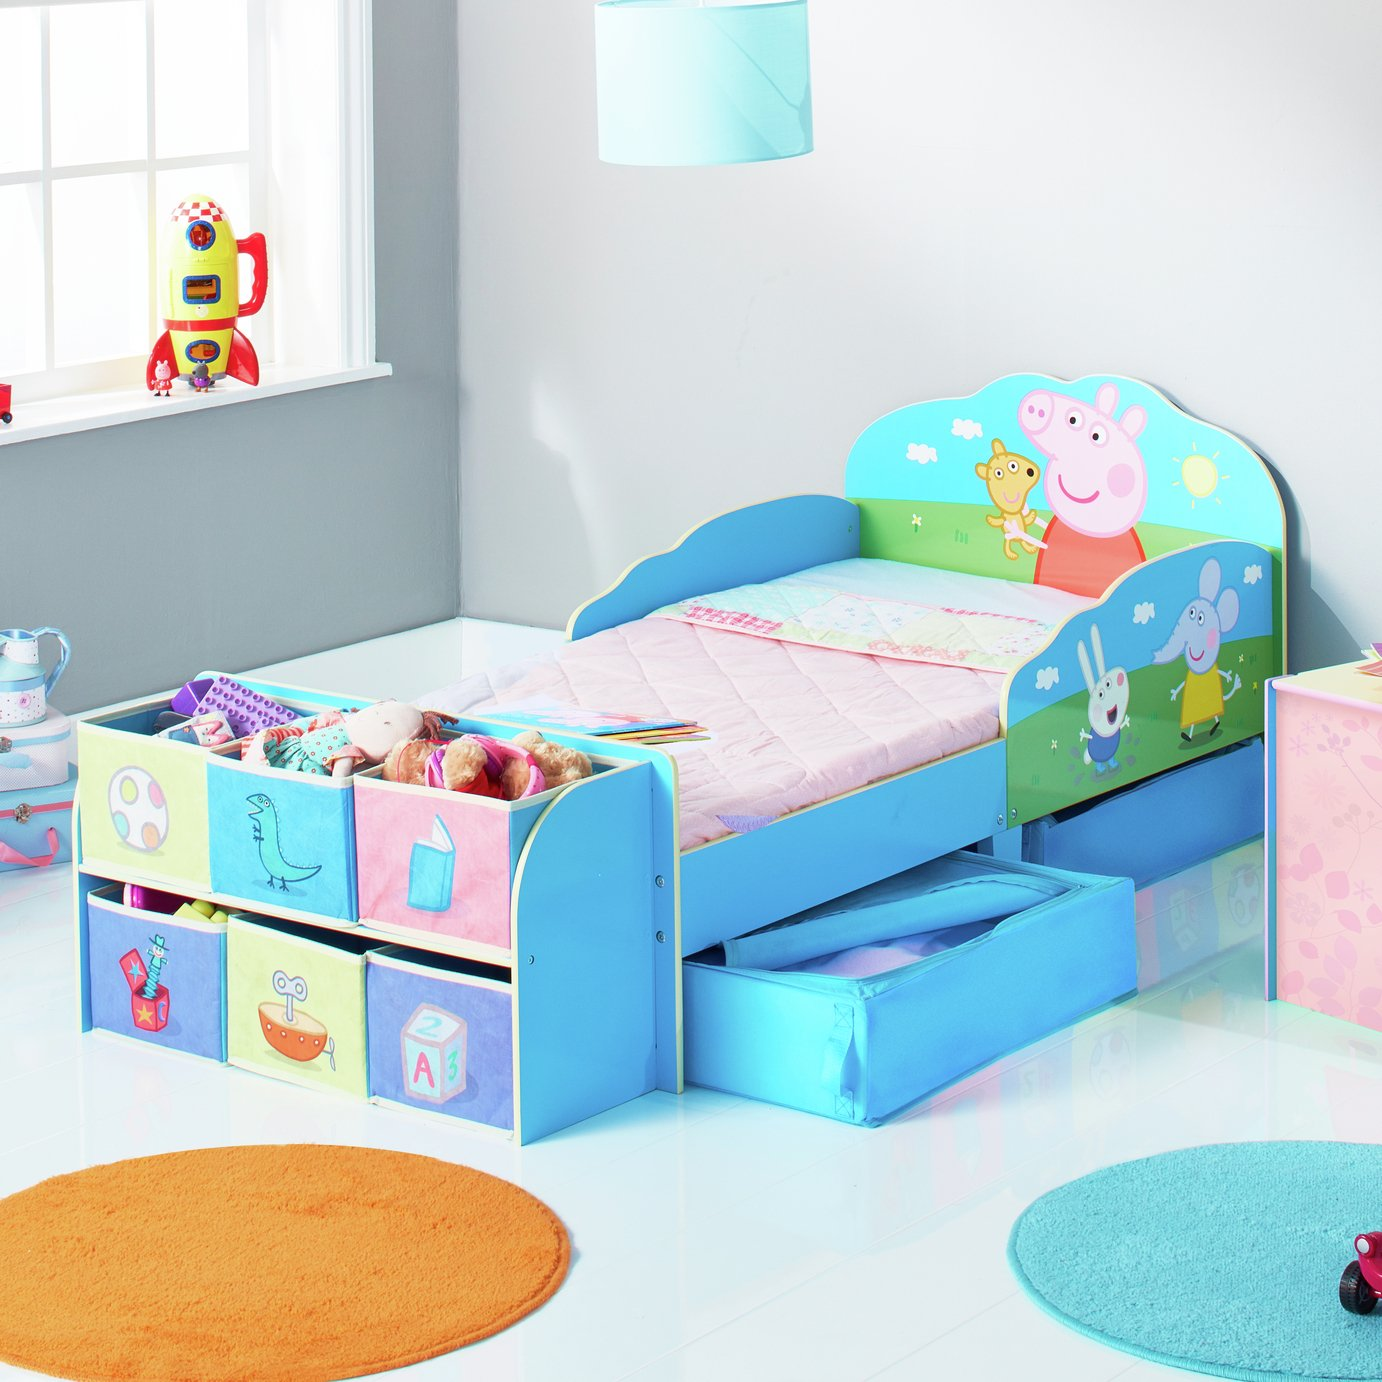 Peppa Pig Toddler Bed with Cube Storage from Peppa Pig